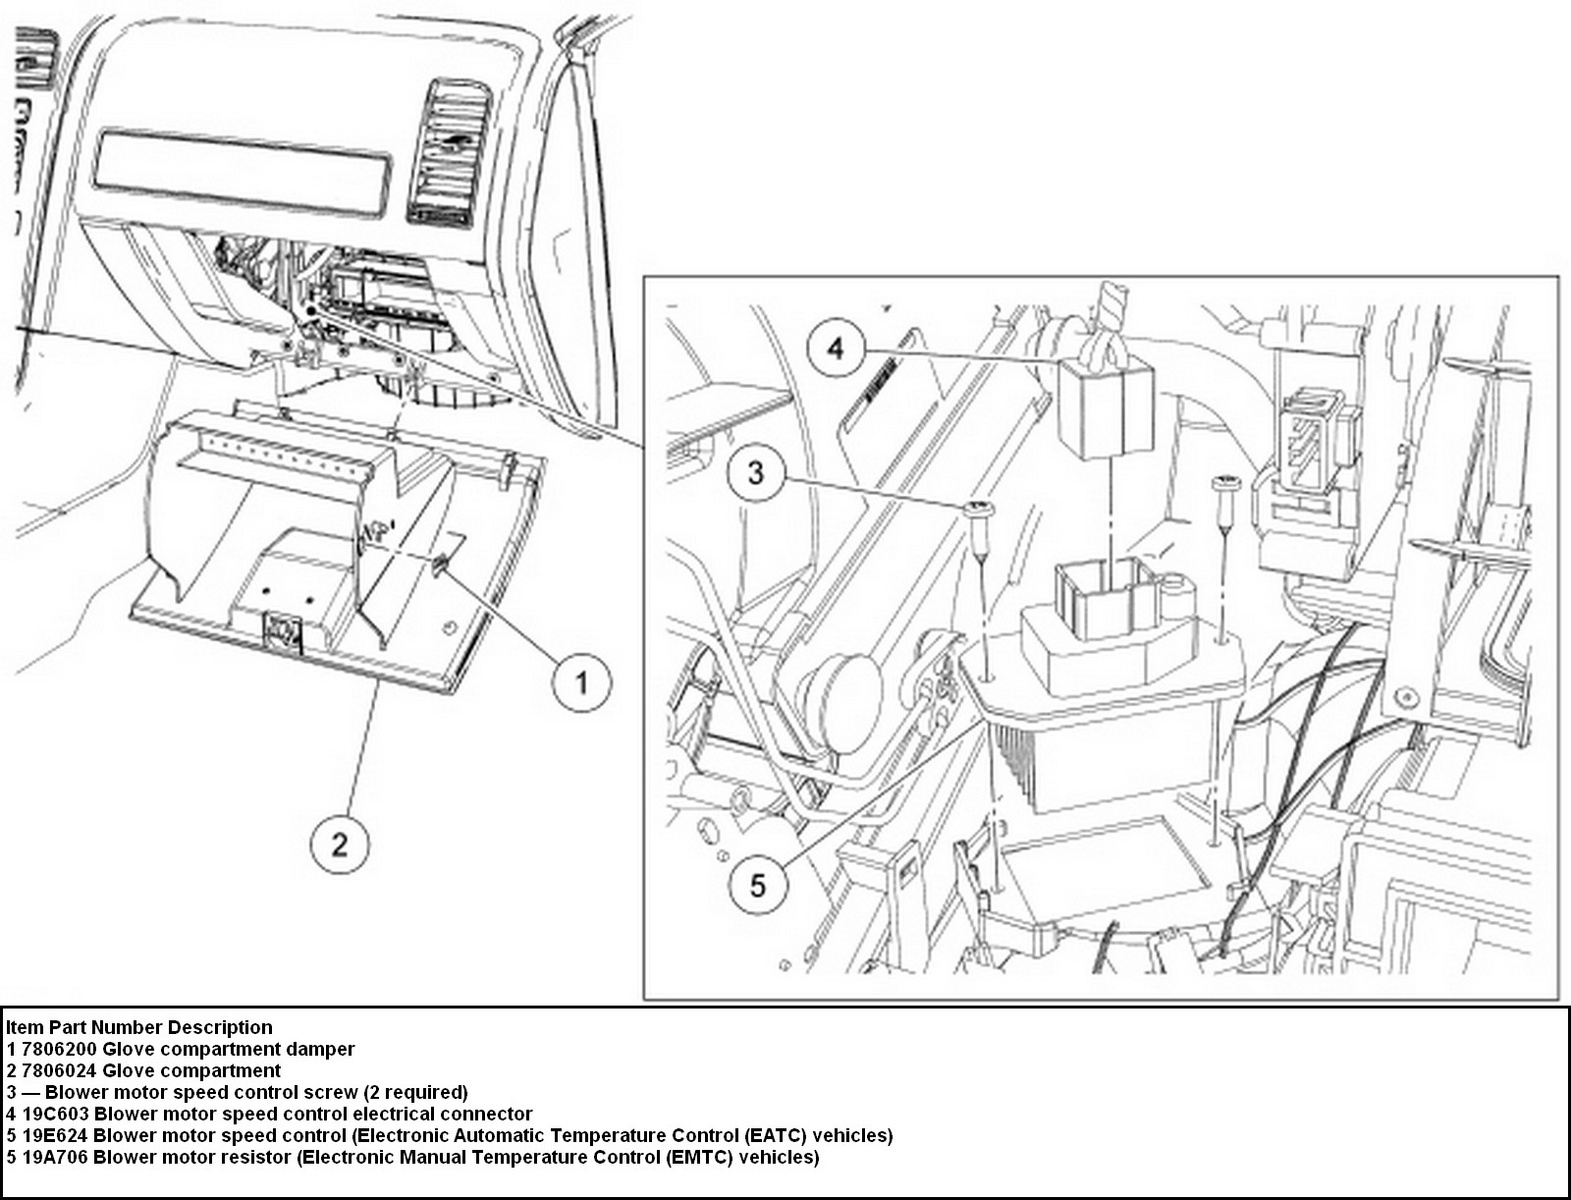 Ford Fusion Blower Motor Resistor Wiring Diagram